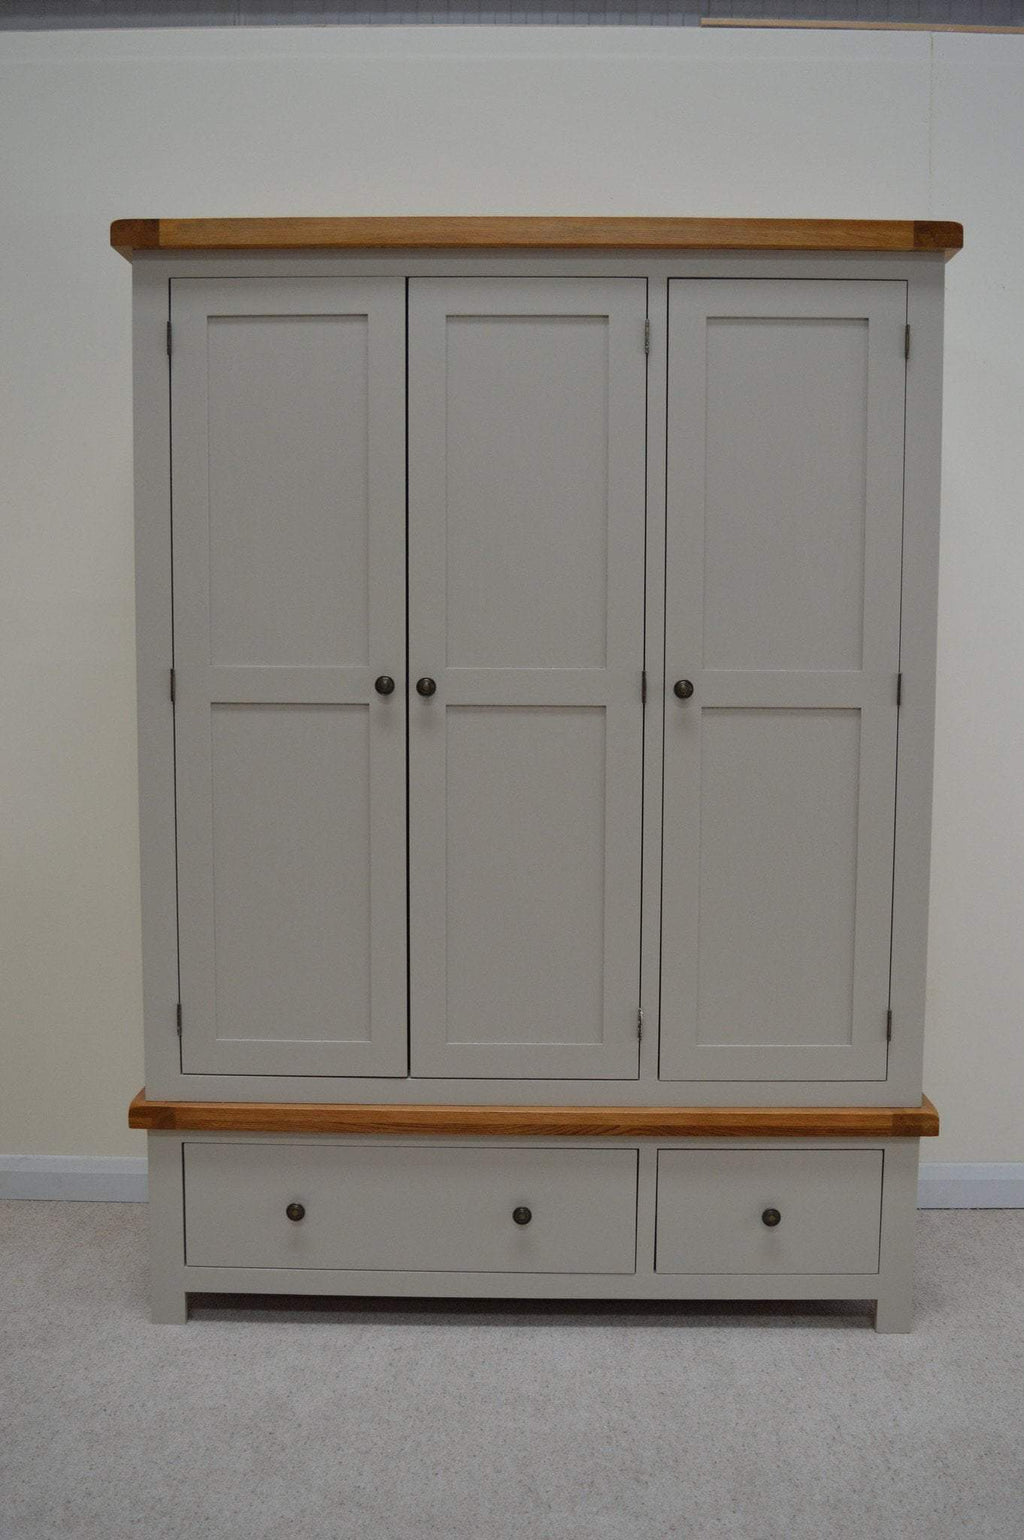 Tuscan Painted Three Door Wardrobe with Storage Drawers - Oak Village